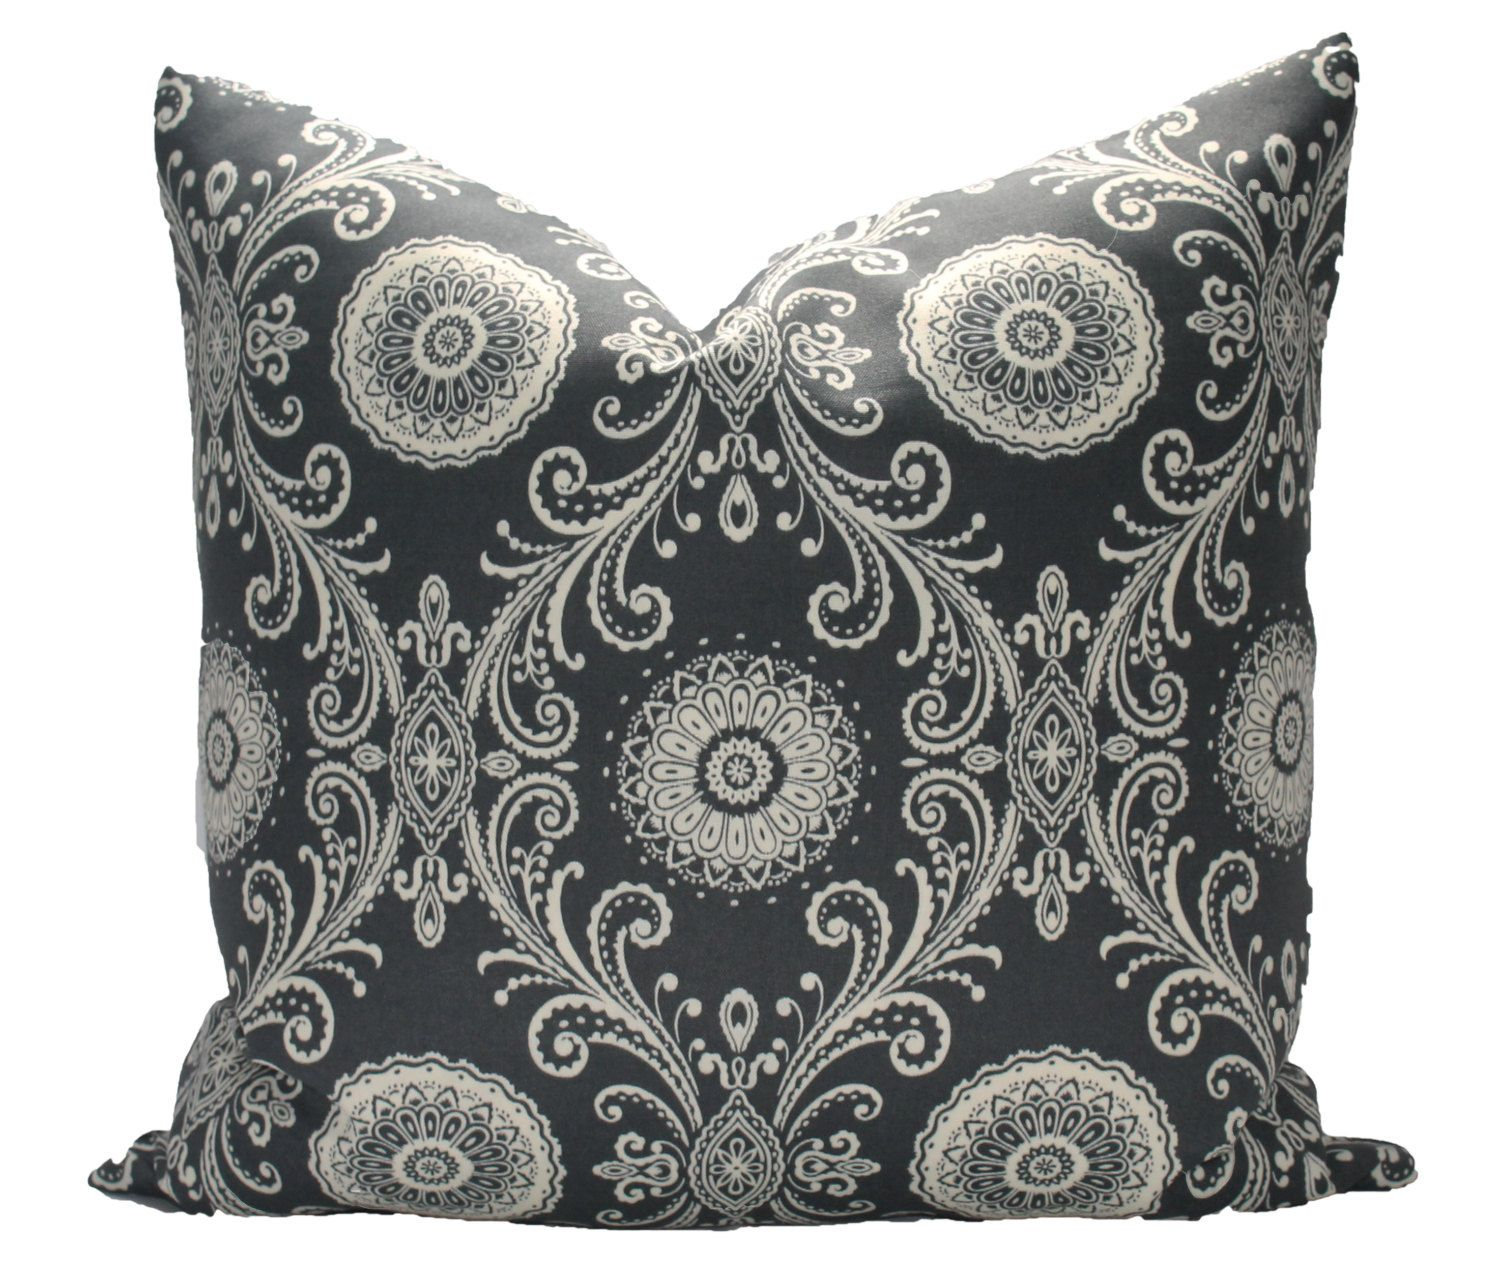 Outdoor Decorative Charcoal Grey Medallions Pillow Cover Etsy Etsy Pillow Covers Medallion Pillow Pillows